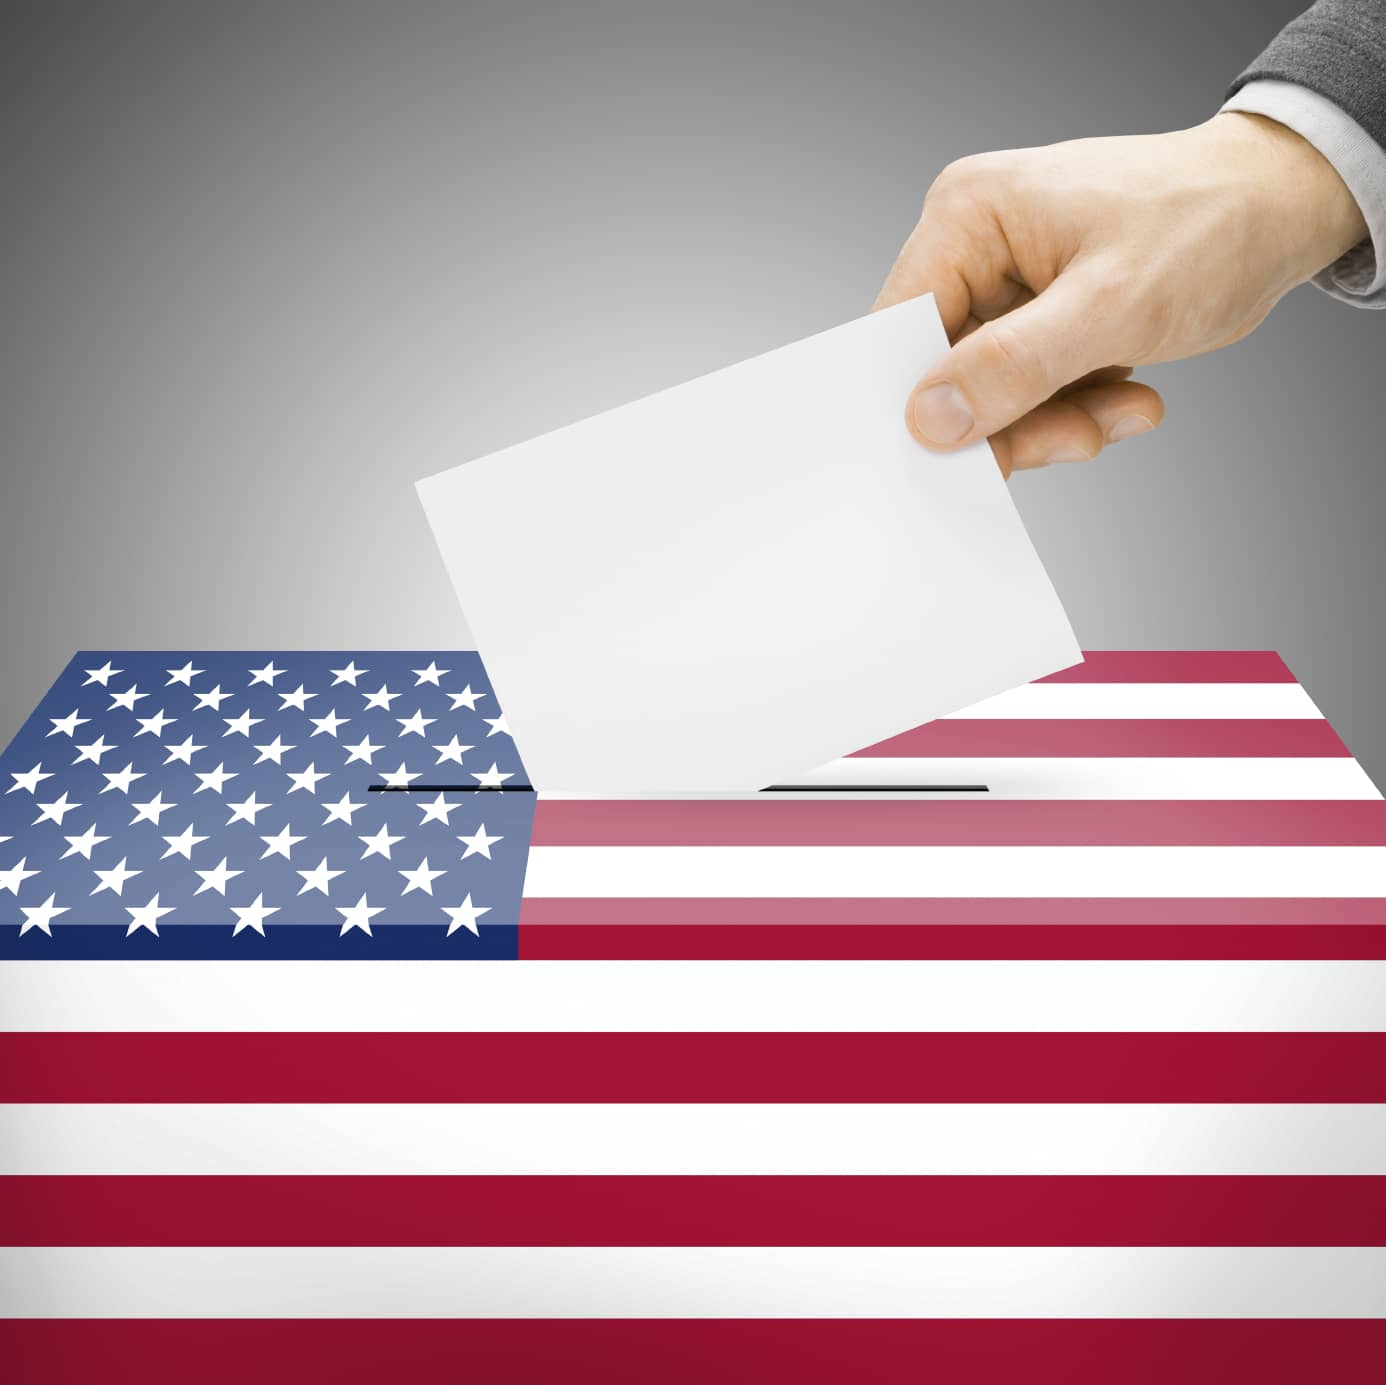 iStock_000063870329_Medium Voter Support For Clean Energy Policies Up Since Last Presidential Election